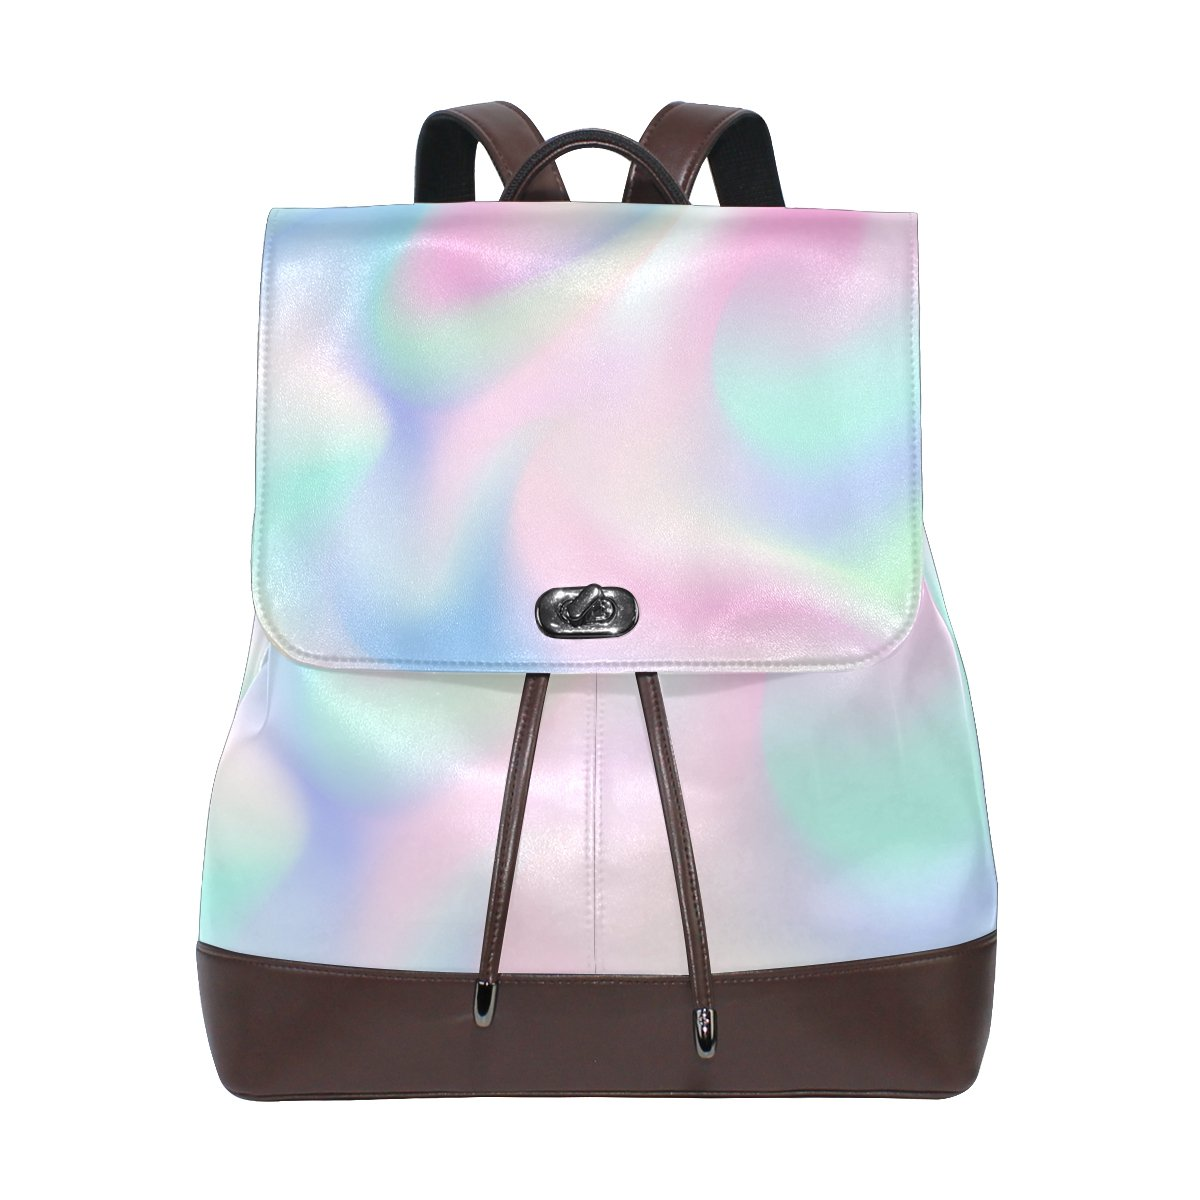 08c1ca07e35c KUWT Abstract Art Rainbow Color Galaxy PU Leather Backpack Photo Custom Shoulder  Bag School College Book Bag Casual Daypacks Diaper Bag for Women and Girl